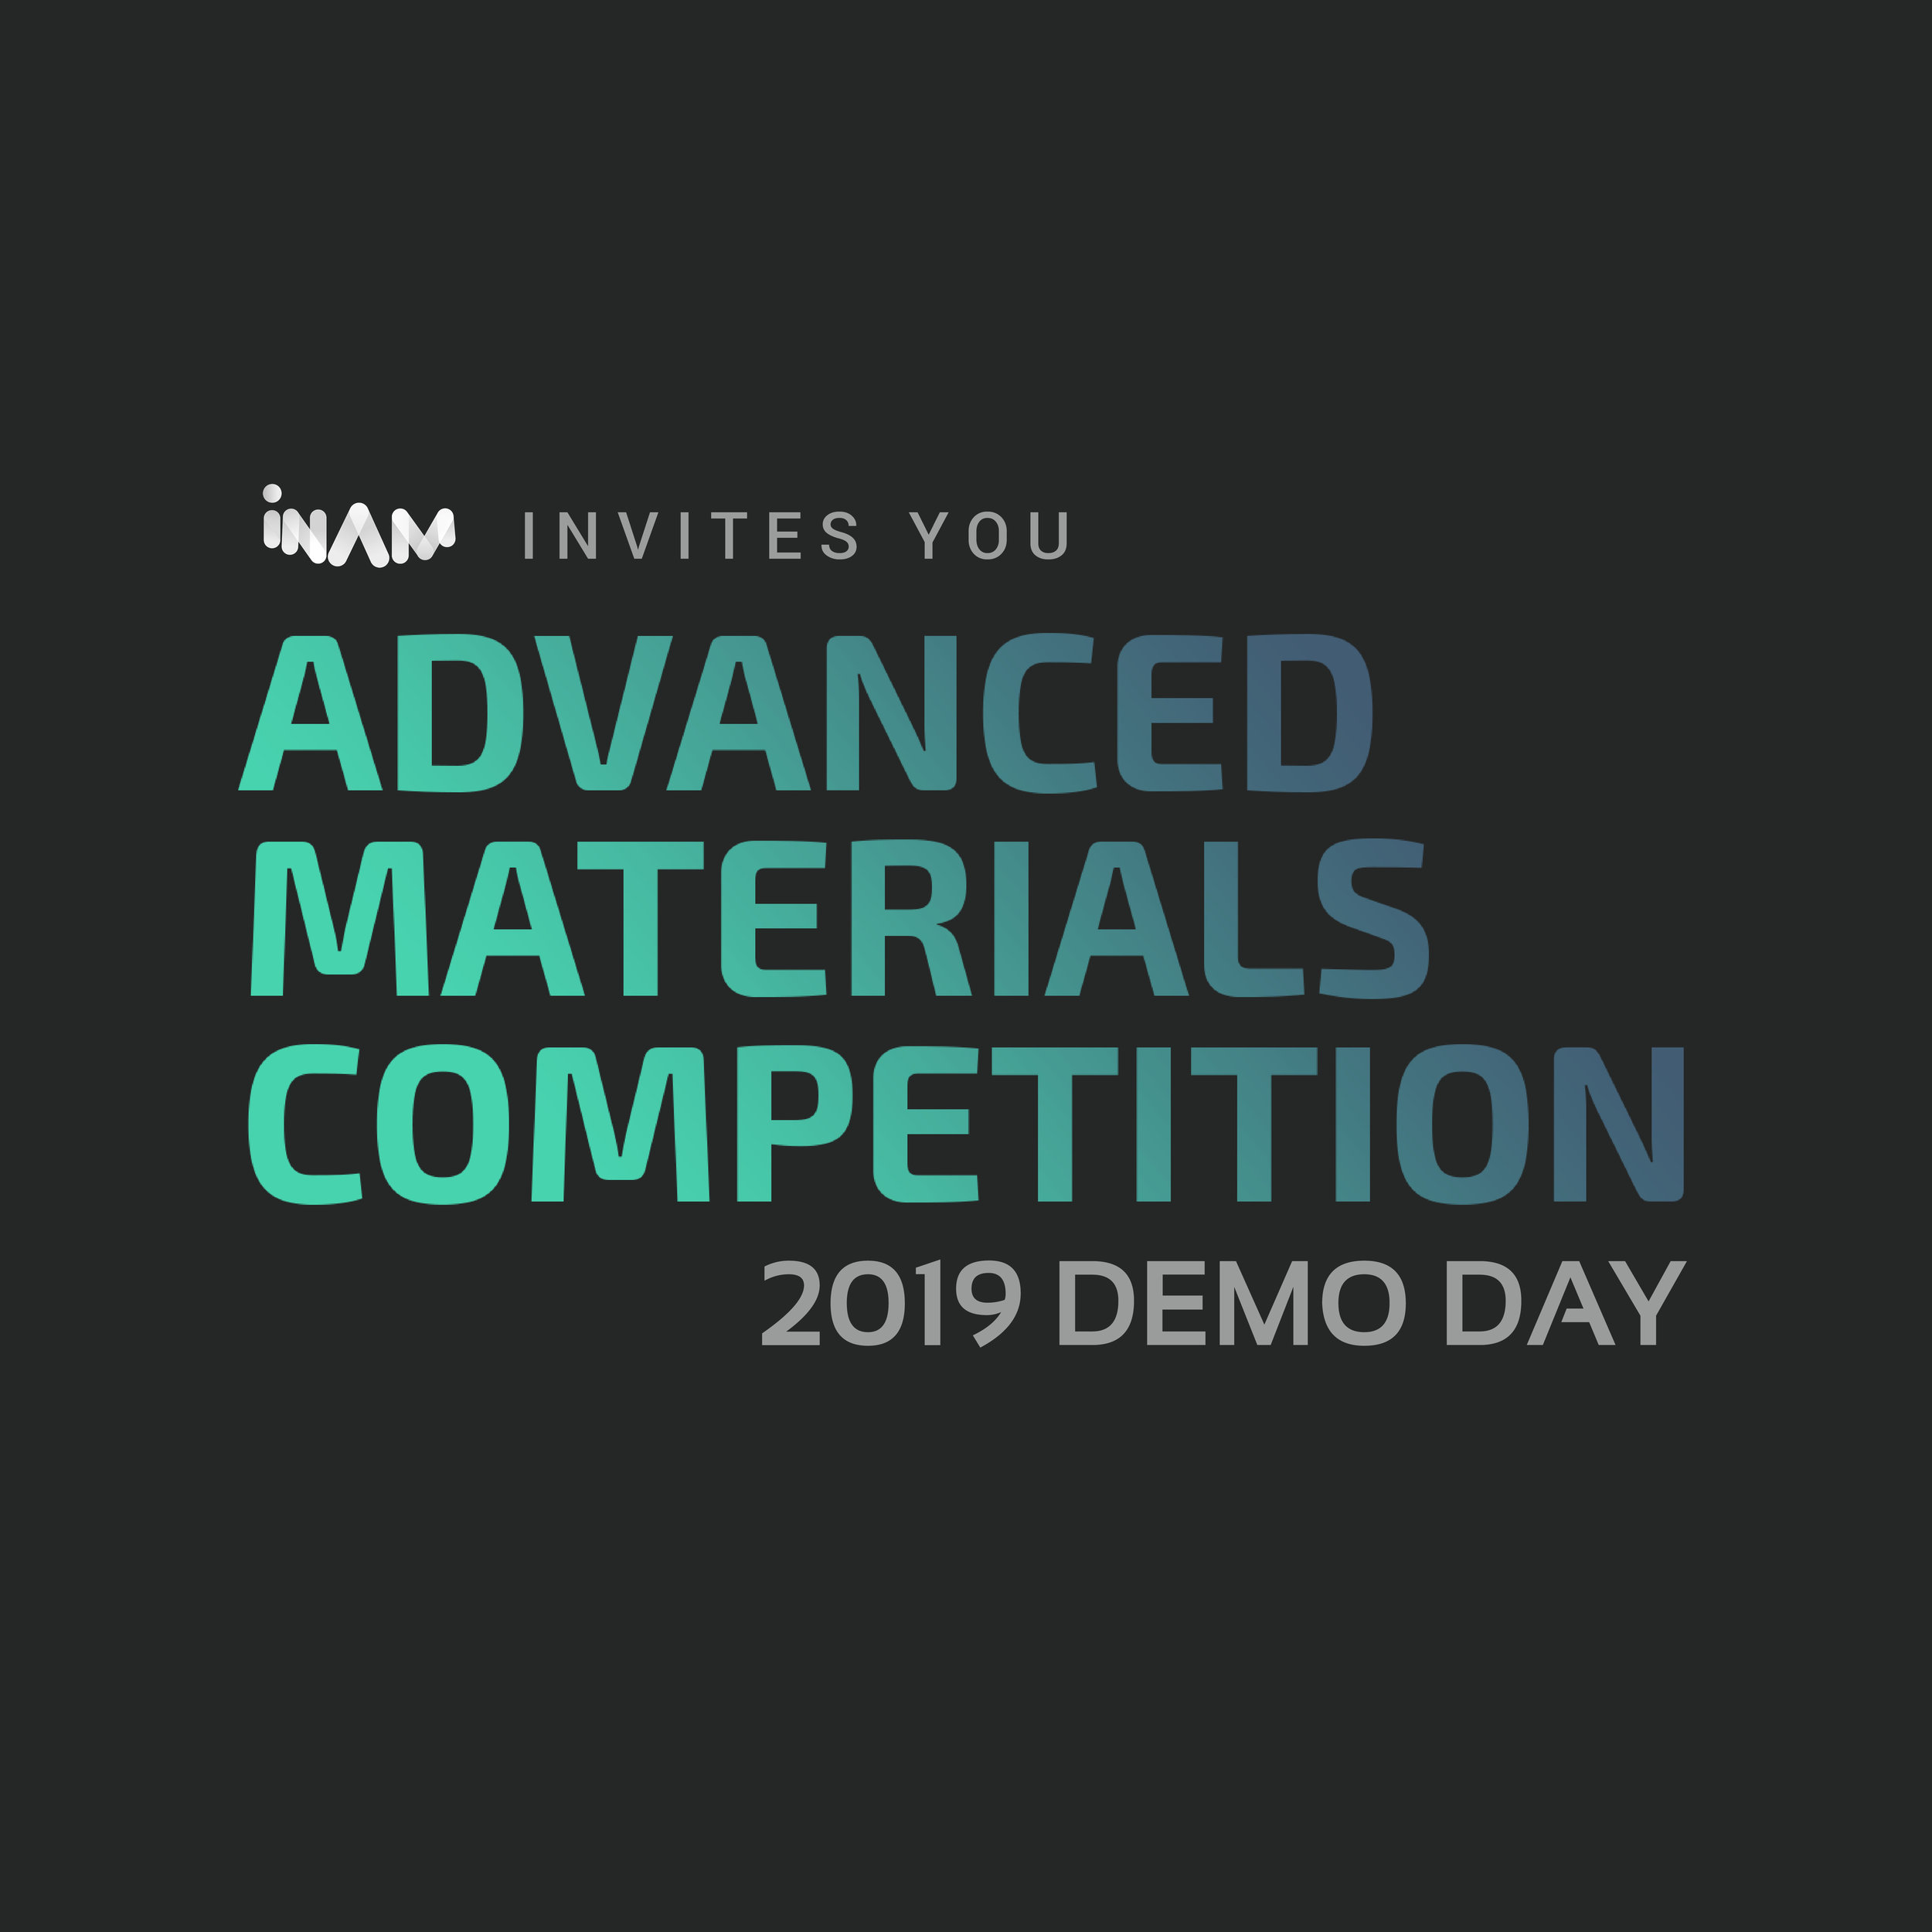 ADMACOM 2019 DEMO DAY - Join us to hear pitches from 10 exciting startups in materials science. The teams come from all over the world and the Demo Day marks their graduation from our intense 2 week Accelerator Program, AdMaCom.